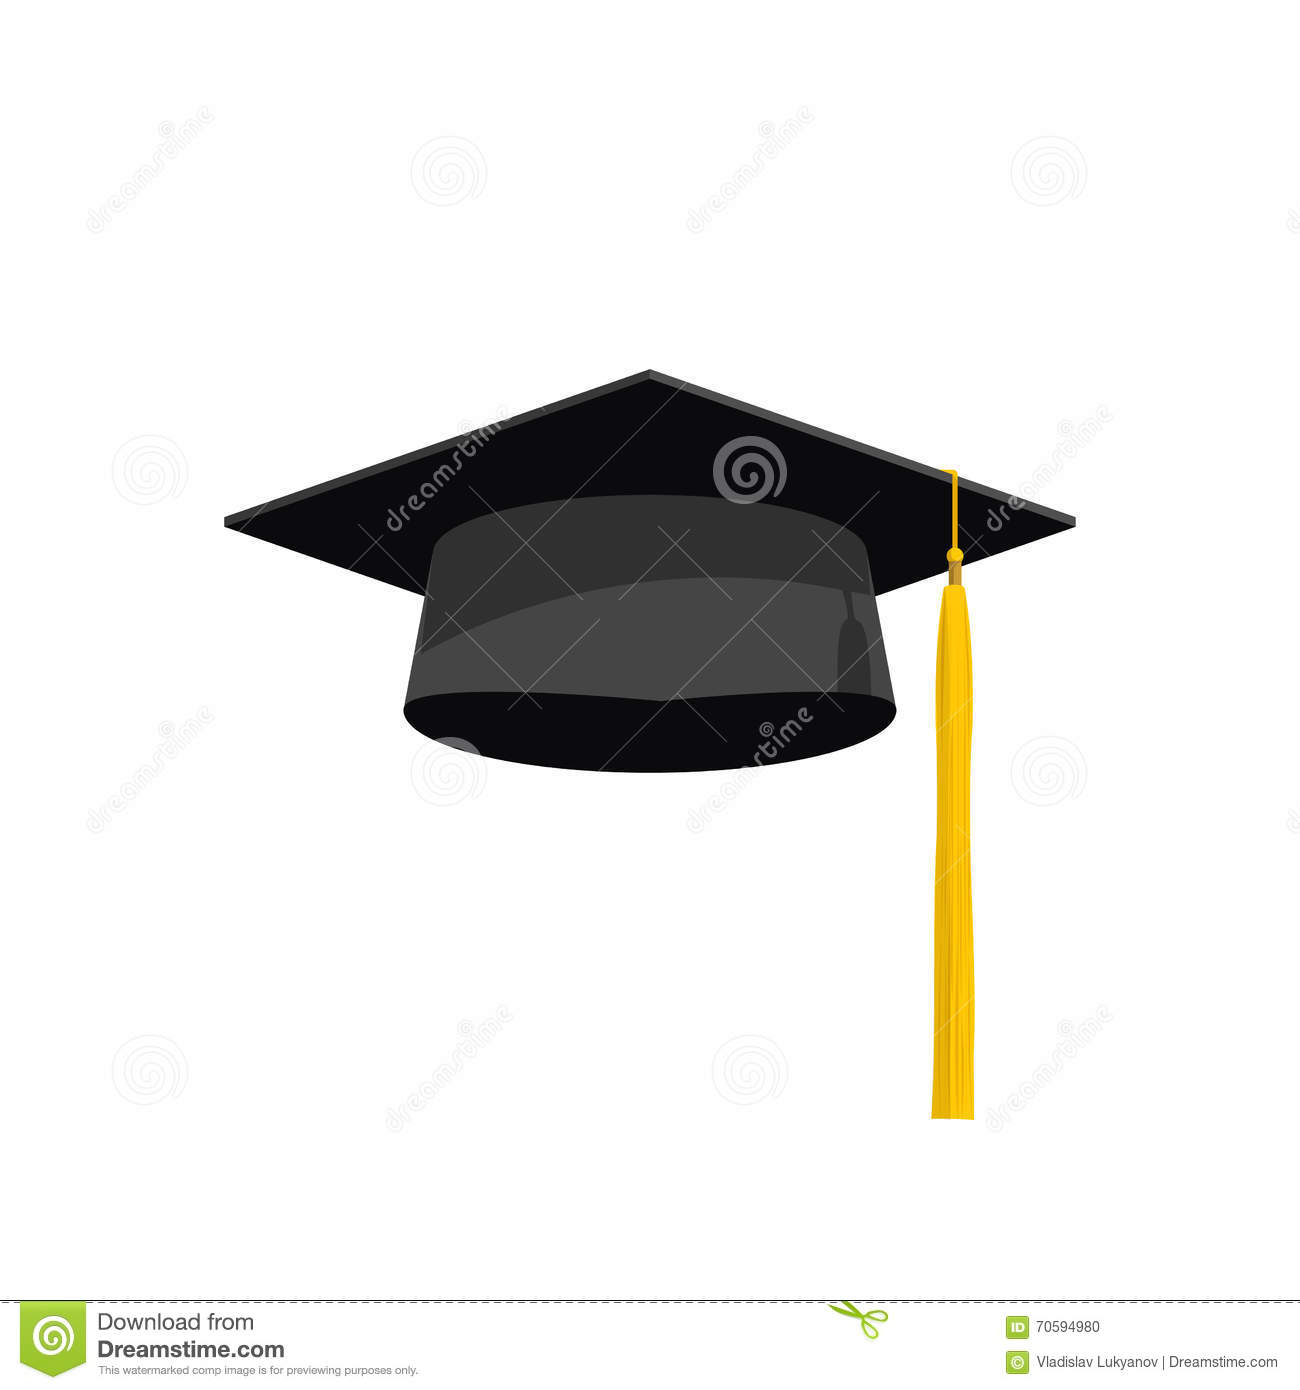 Graduation cap vector illustration, graduation hat icon, academy hat ...